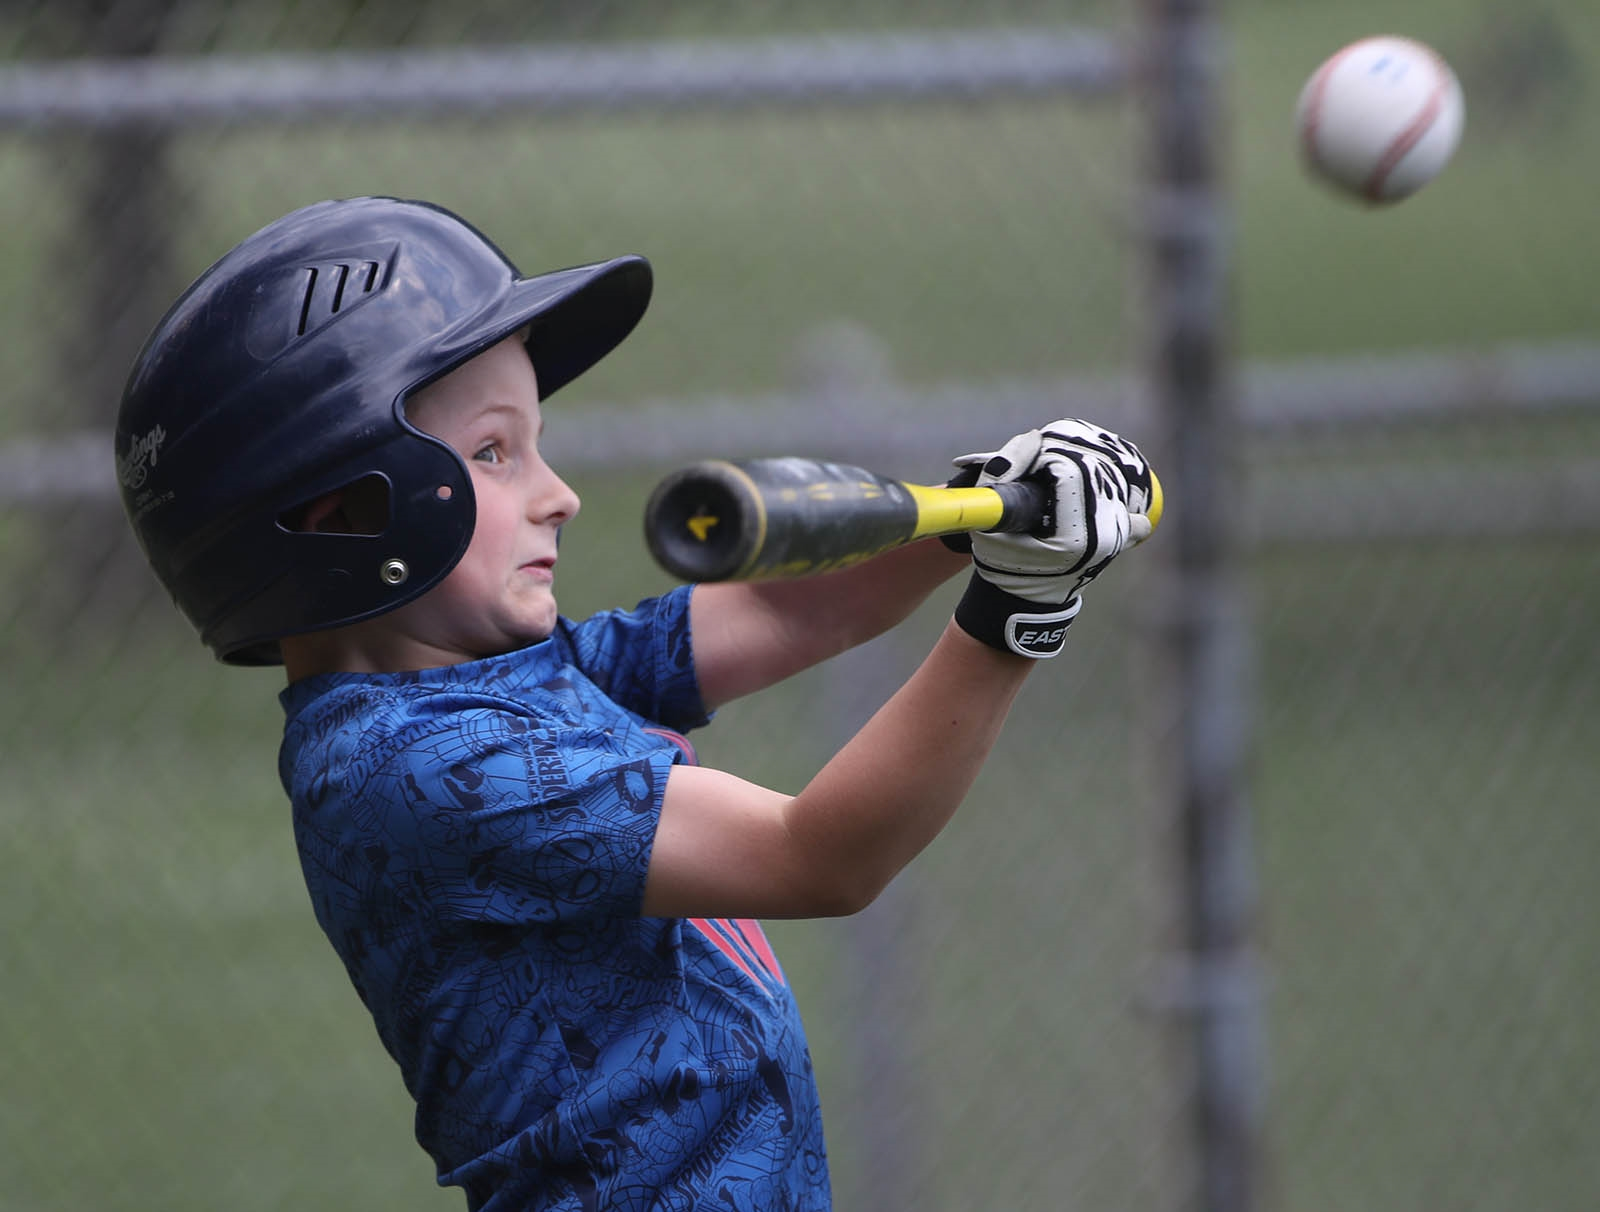 Little leaguer Cole McCleary, 7, connects with a pitch thrown by his grandfather Shaun McCleary while getting some batting practice.